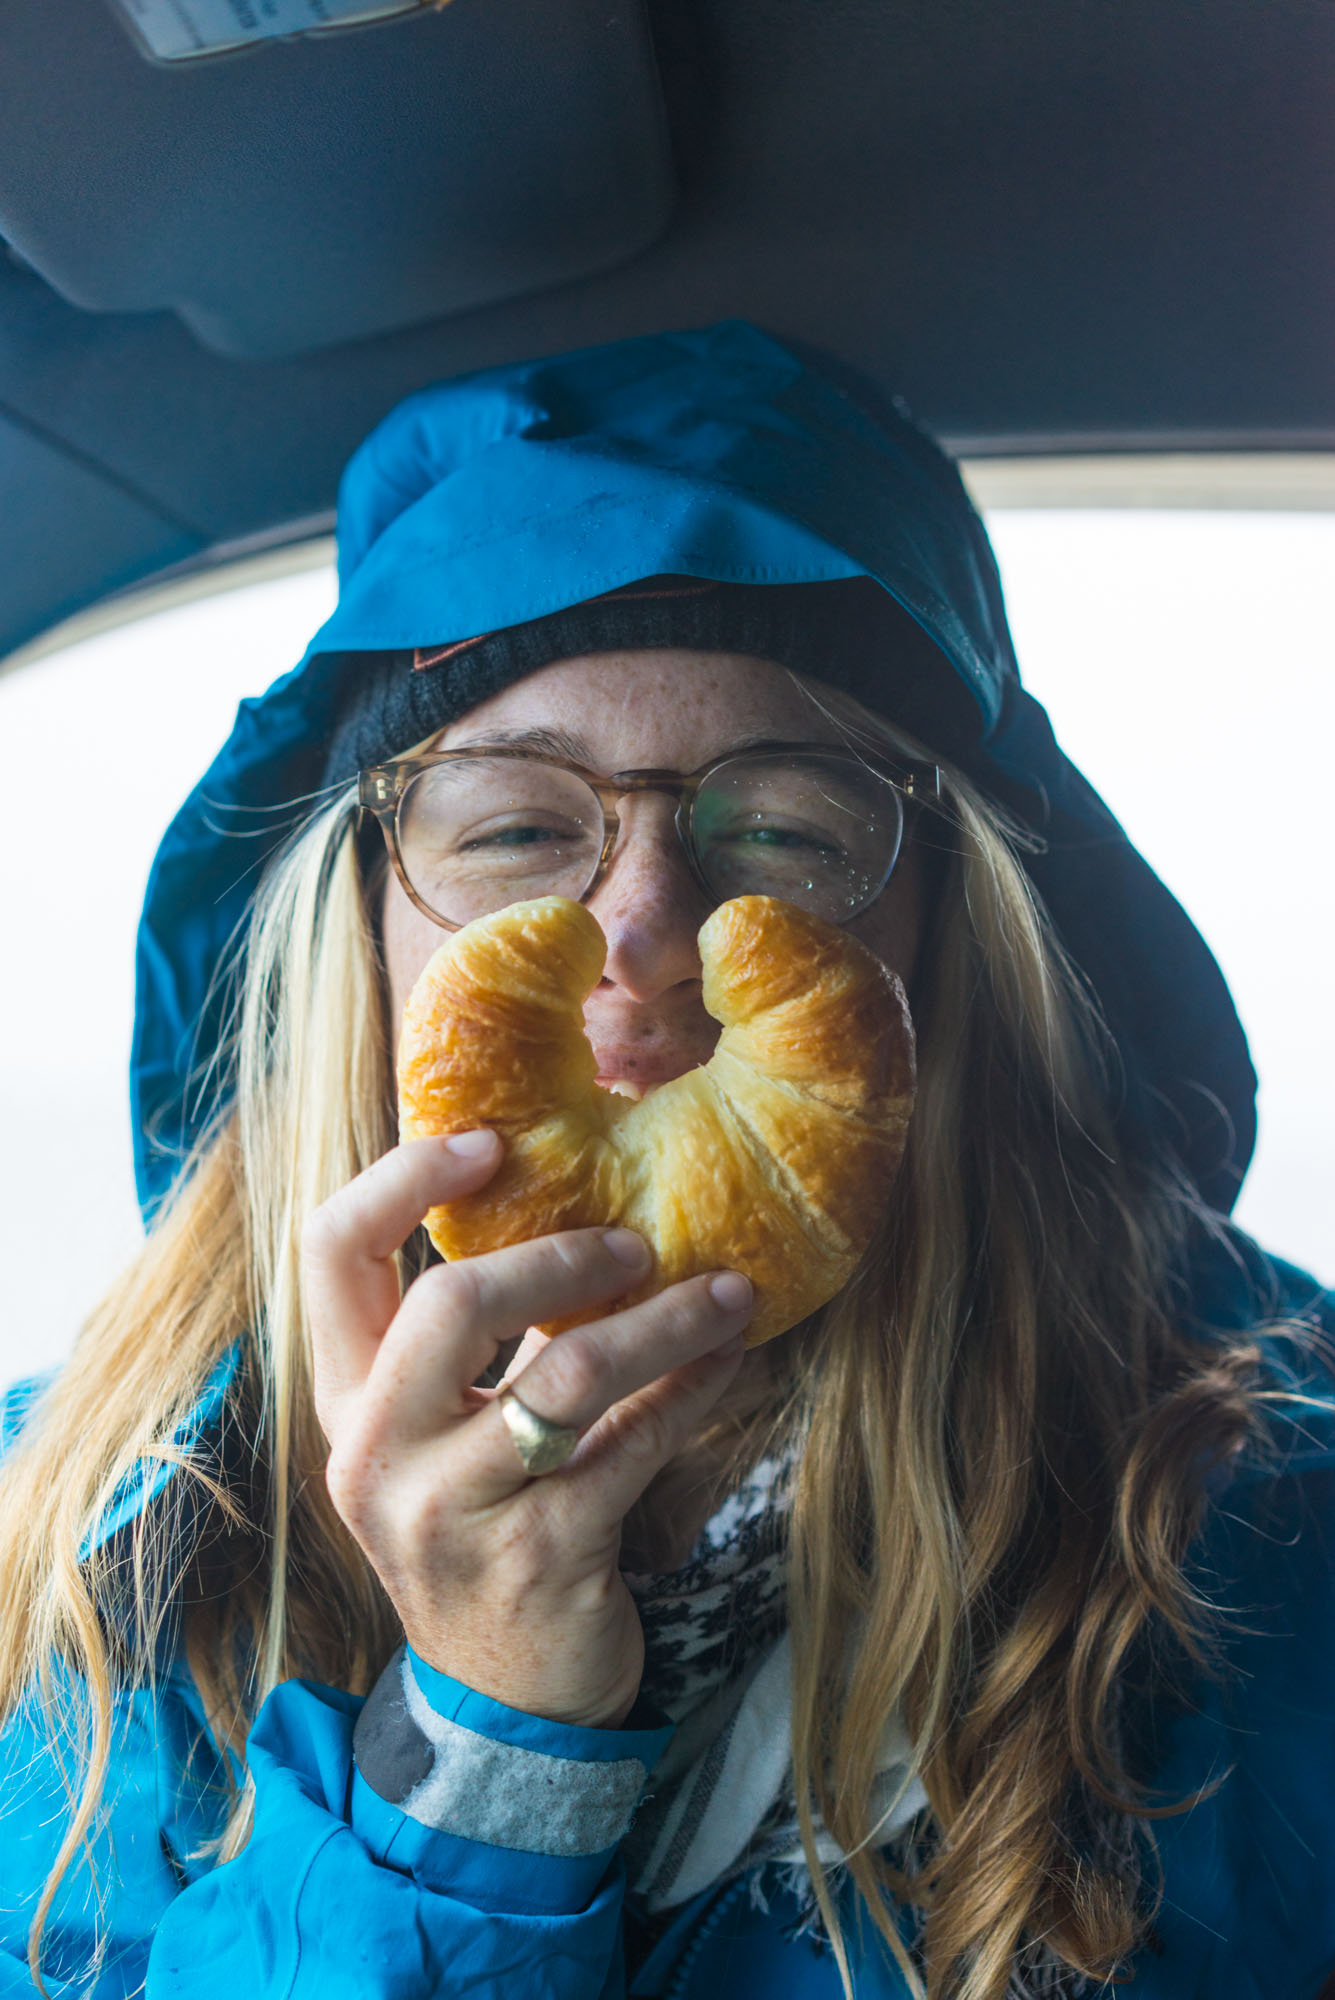 MAK enjoying a fresh croissant from the french town of Petit Étang